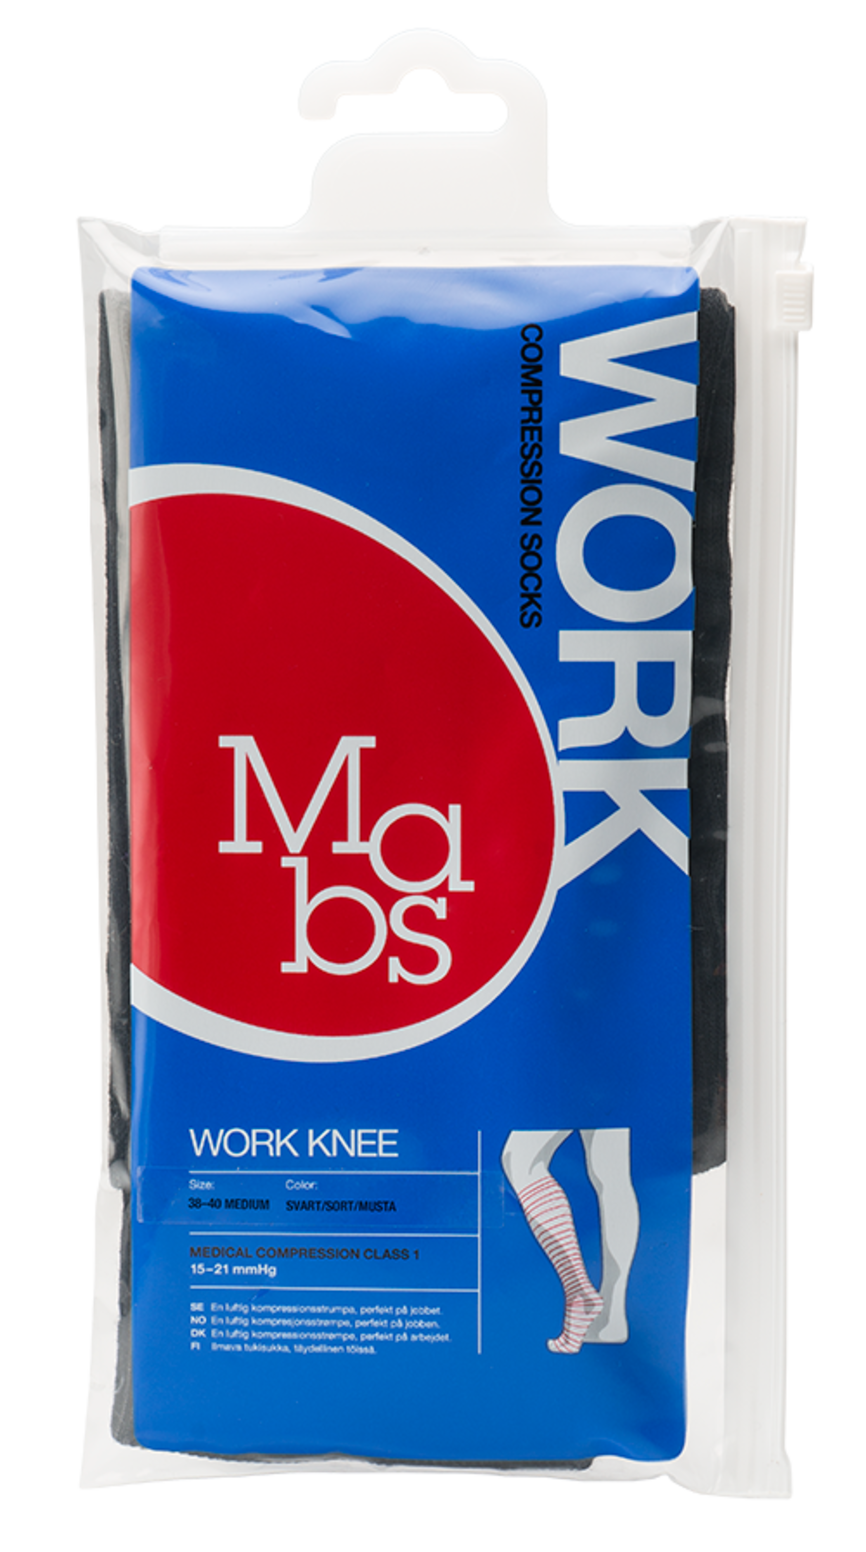 Mabs-forpakning-WorkKnee-Mpng-pearl866x